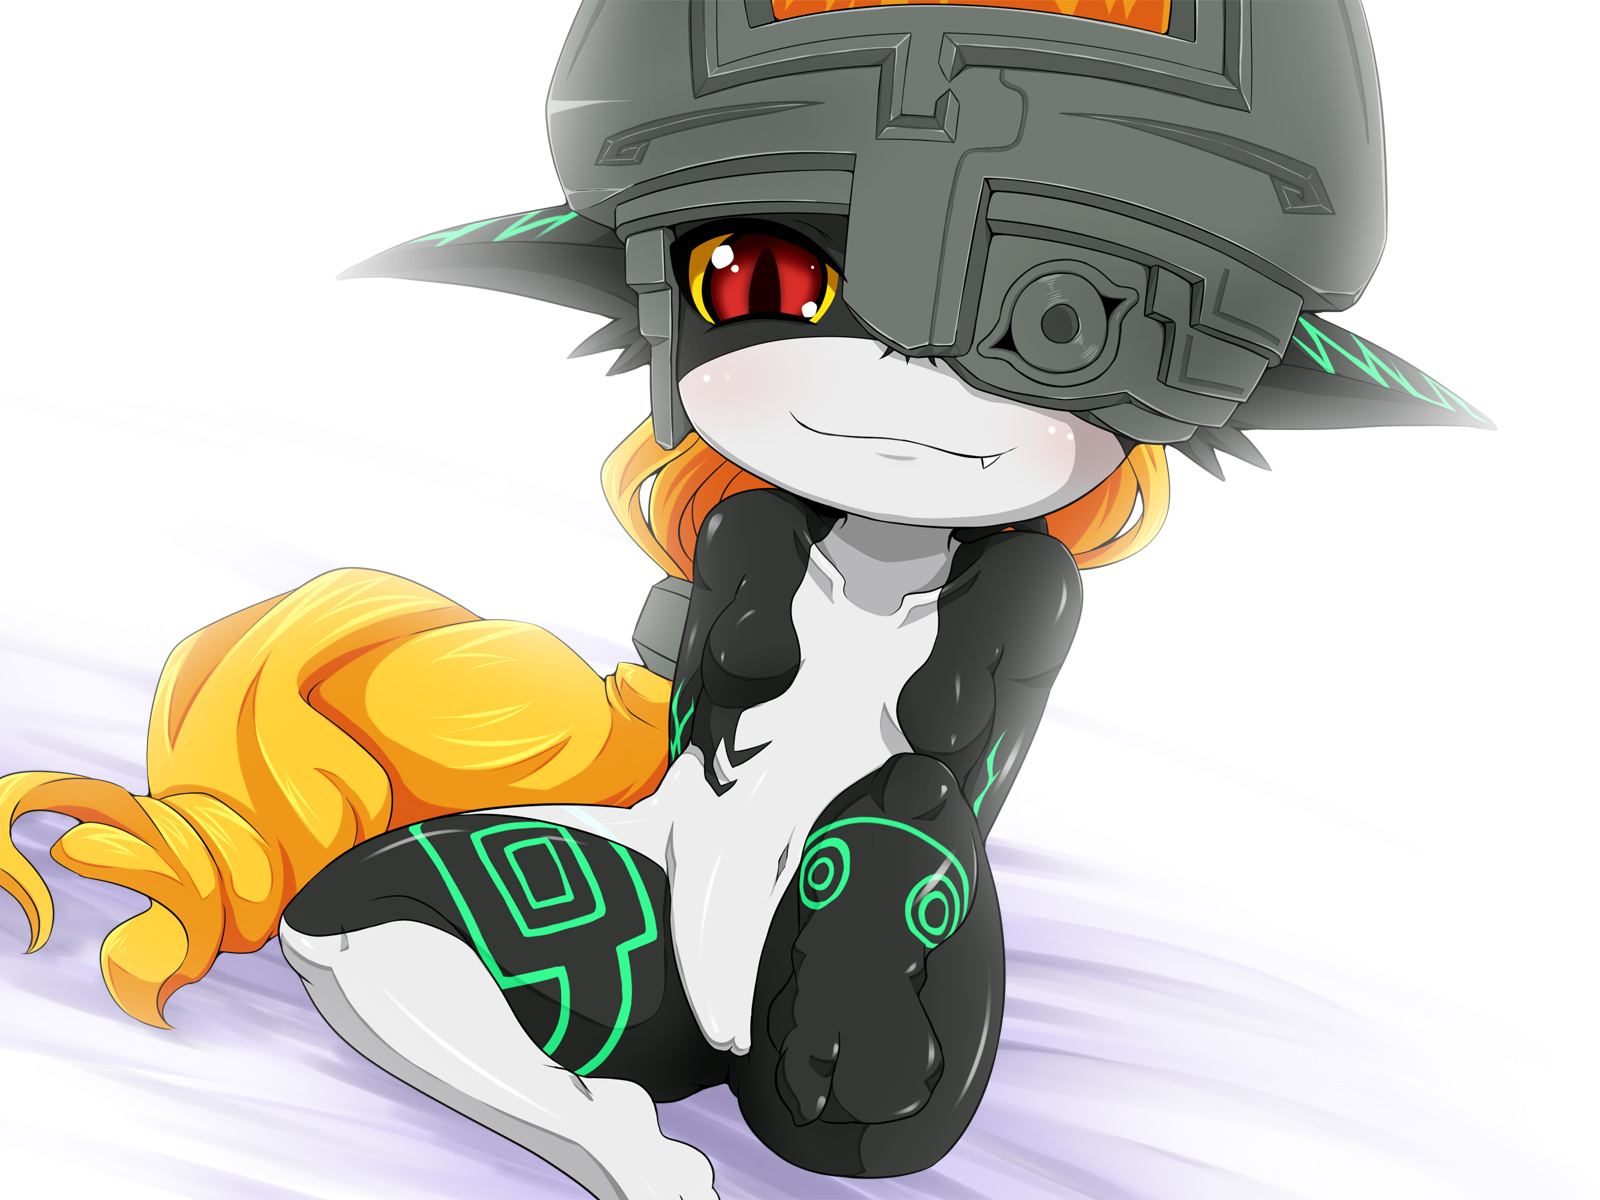 e621 blush breasts chloroplast female hi_res humanoid looking_at_viewer midna nintendo nude pussy red_eyes simple_background sitting solo the_legend_of_zelda twilight_princess video_games